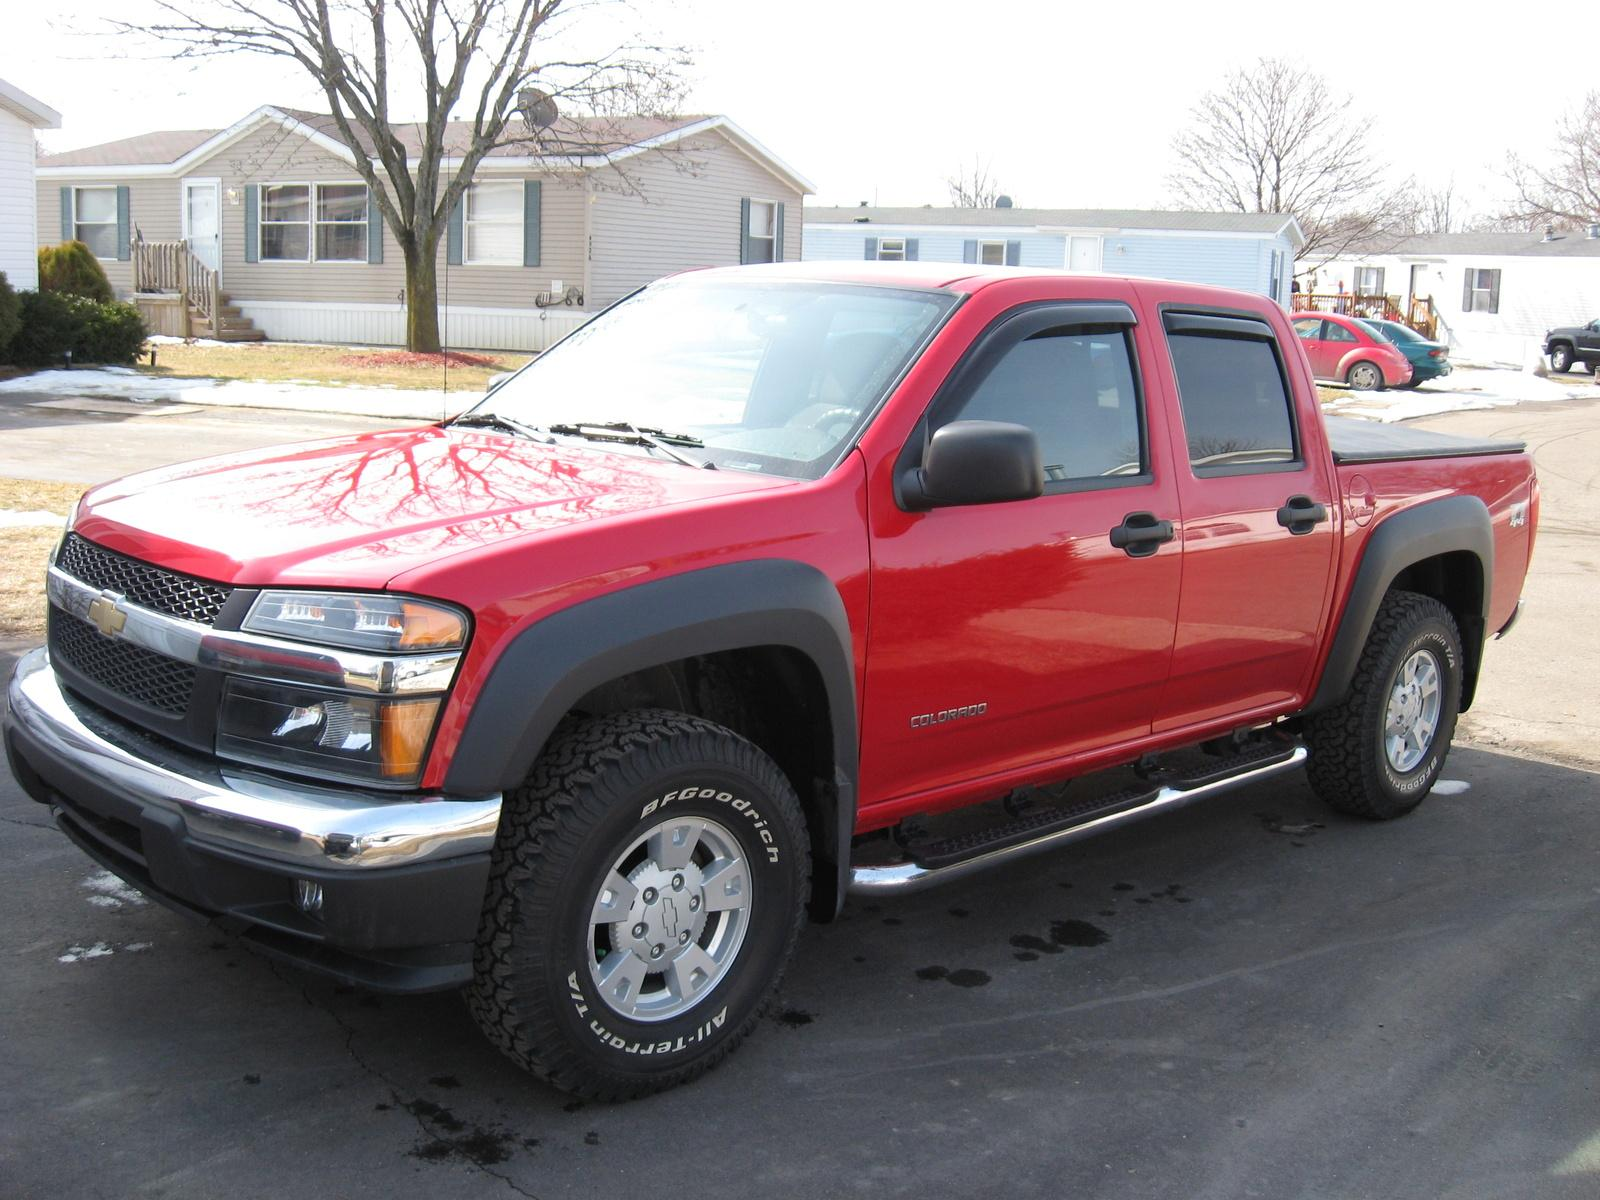 800 1024 1280 1600 origin 2005 gmc canyon